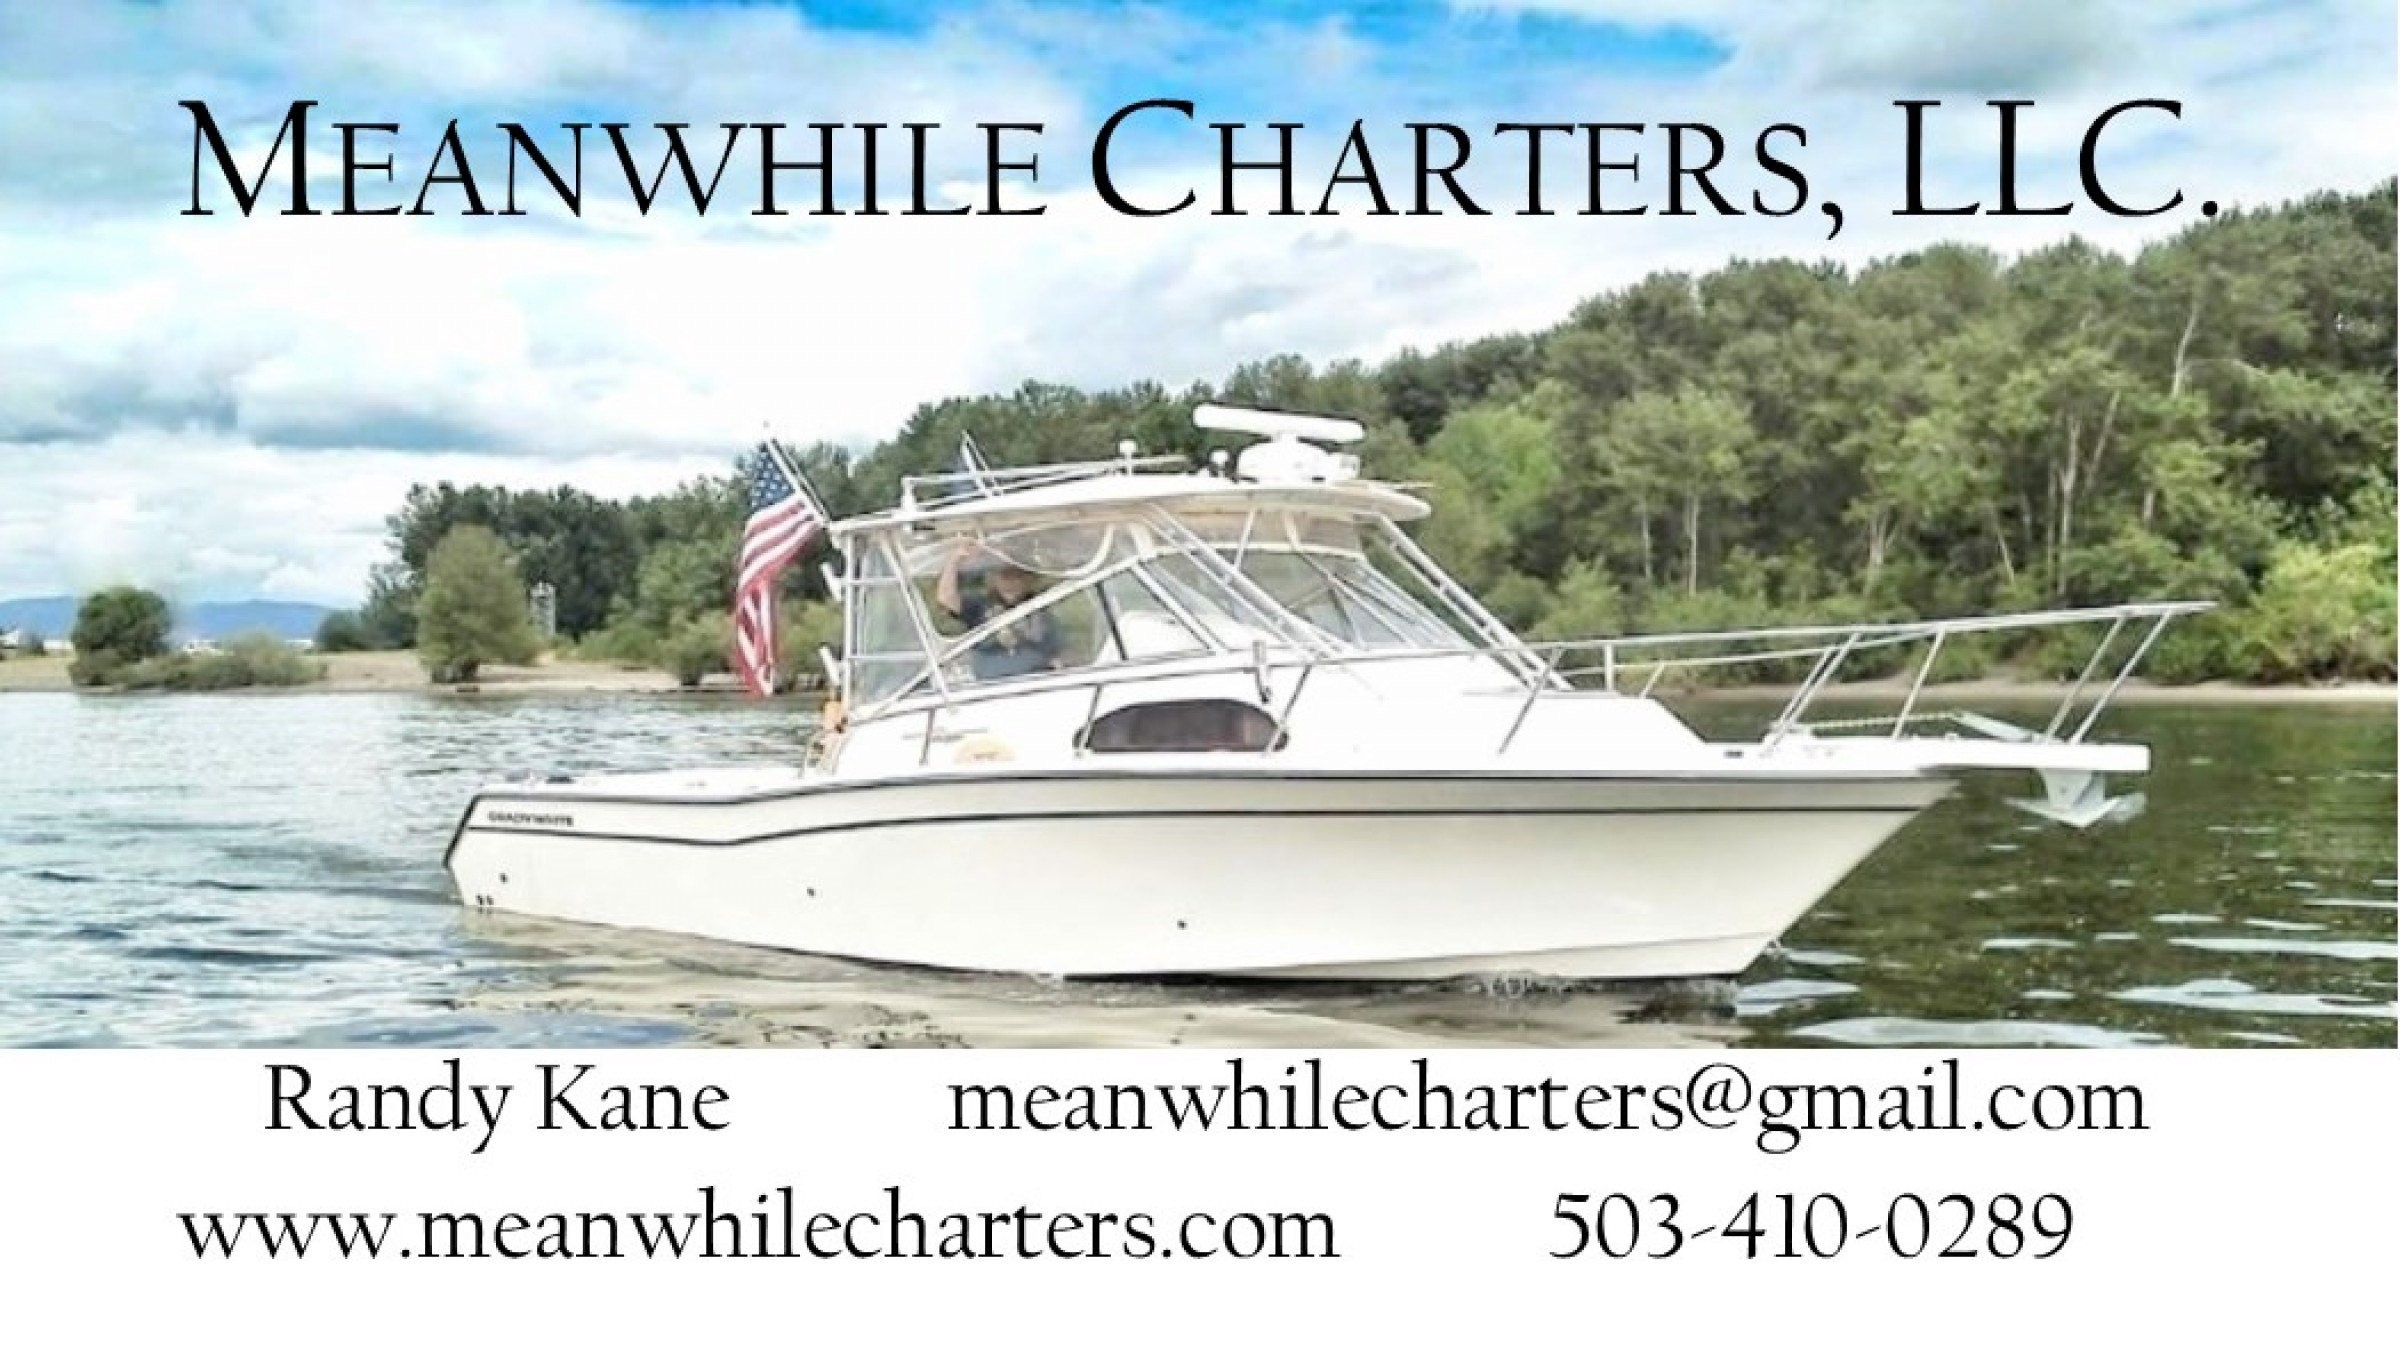 Meanwhile Charters, LLC photo gallery